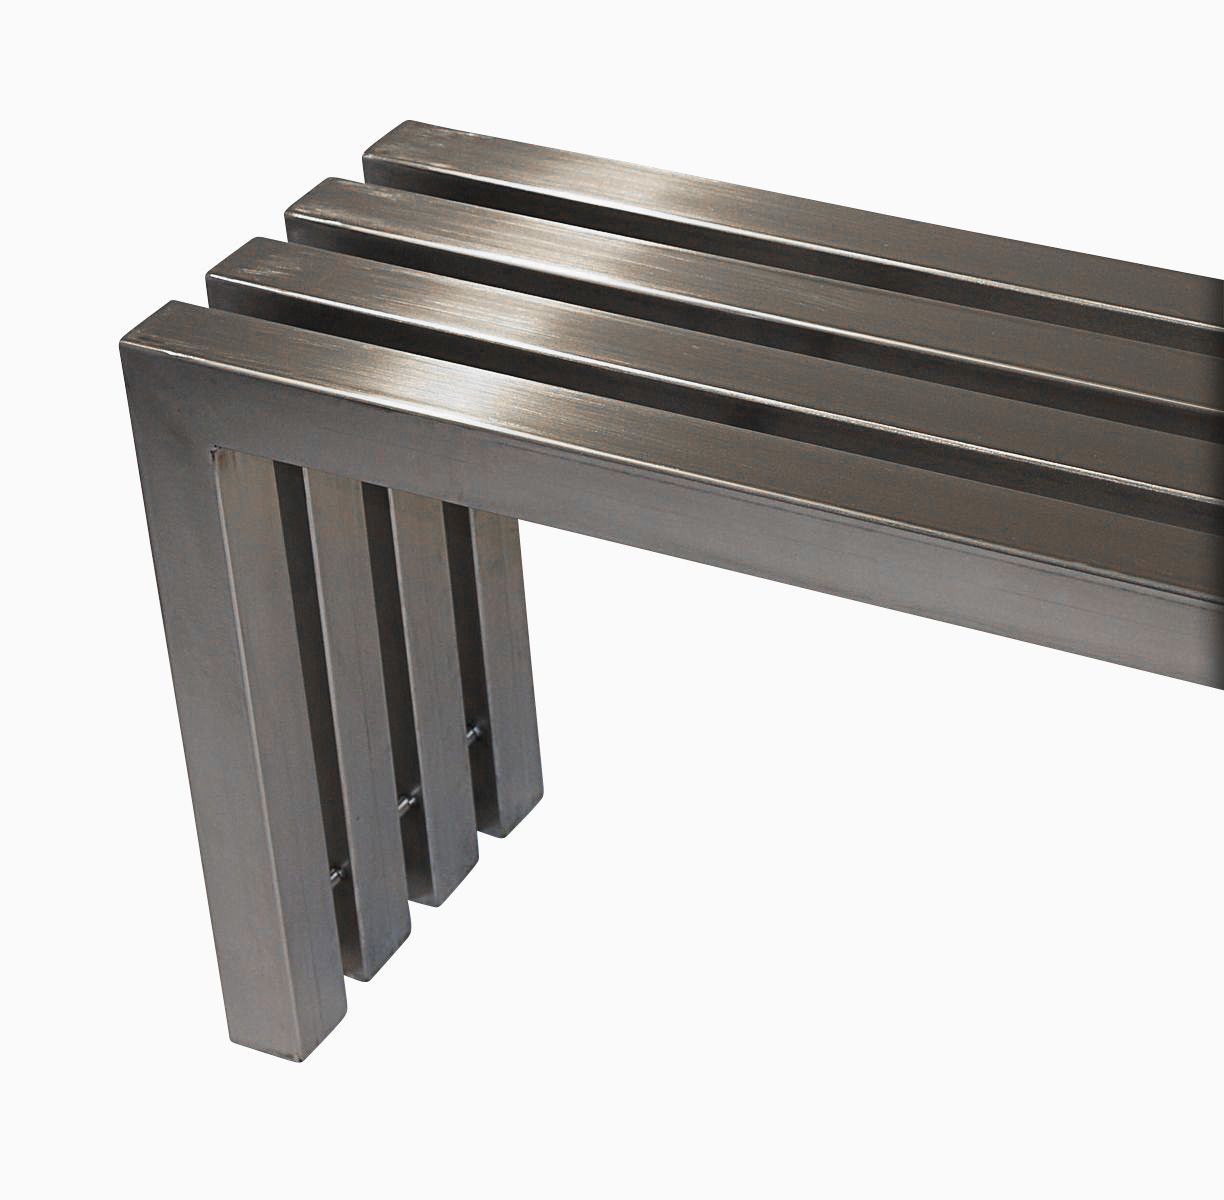 Bar clipart steel. Buy a hand made